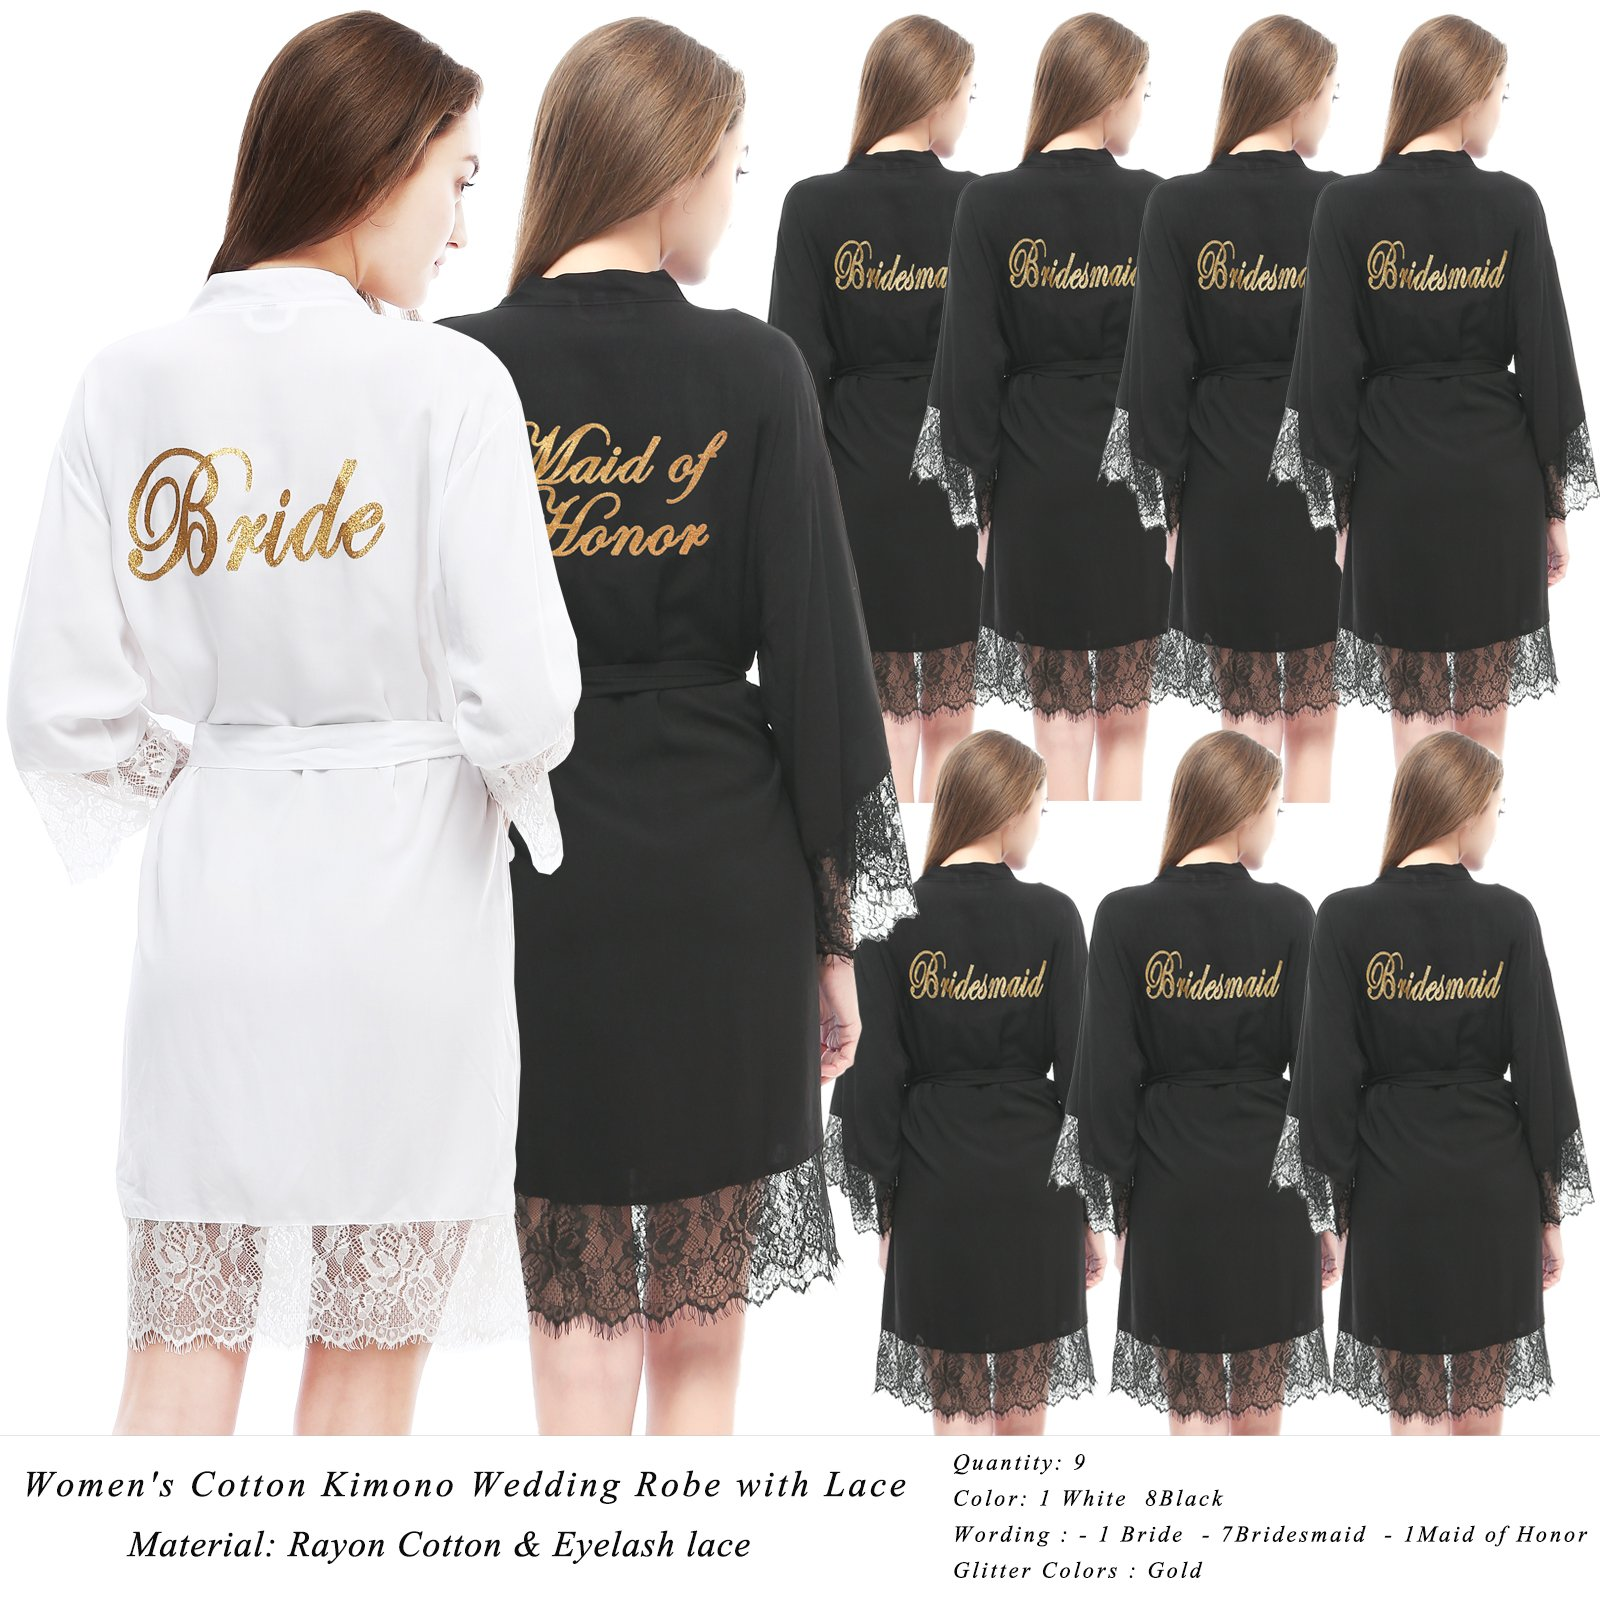 PROGULOVER Set Of 9 Bridesmaid Robes For Wedding Cotton Kimono Bridal Party Getting Ready Robe With Blush Gold Glitter Maid Of Honor Robes